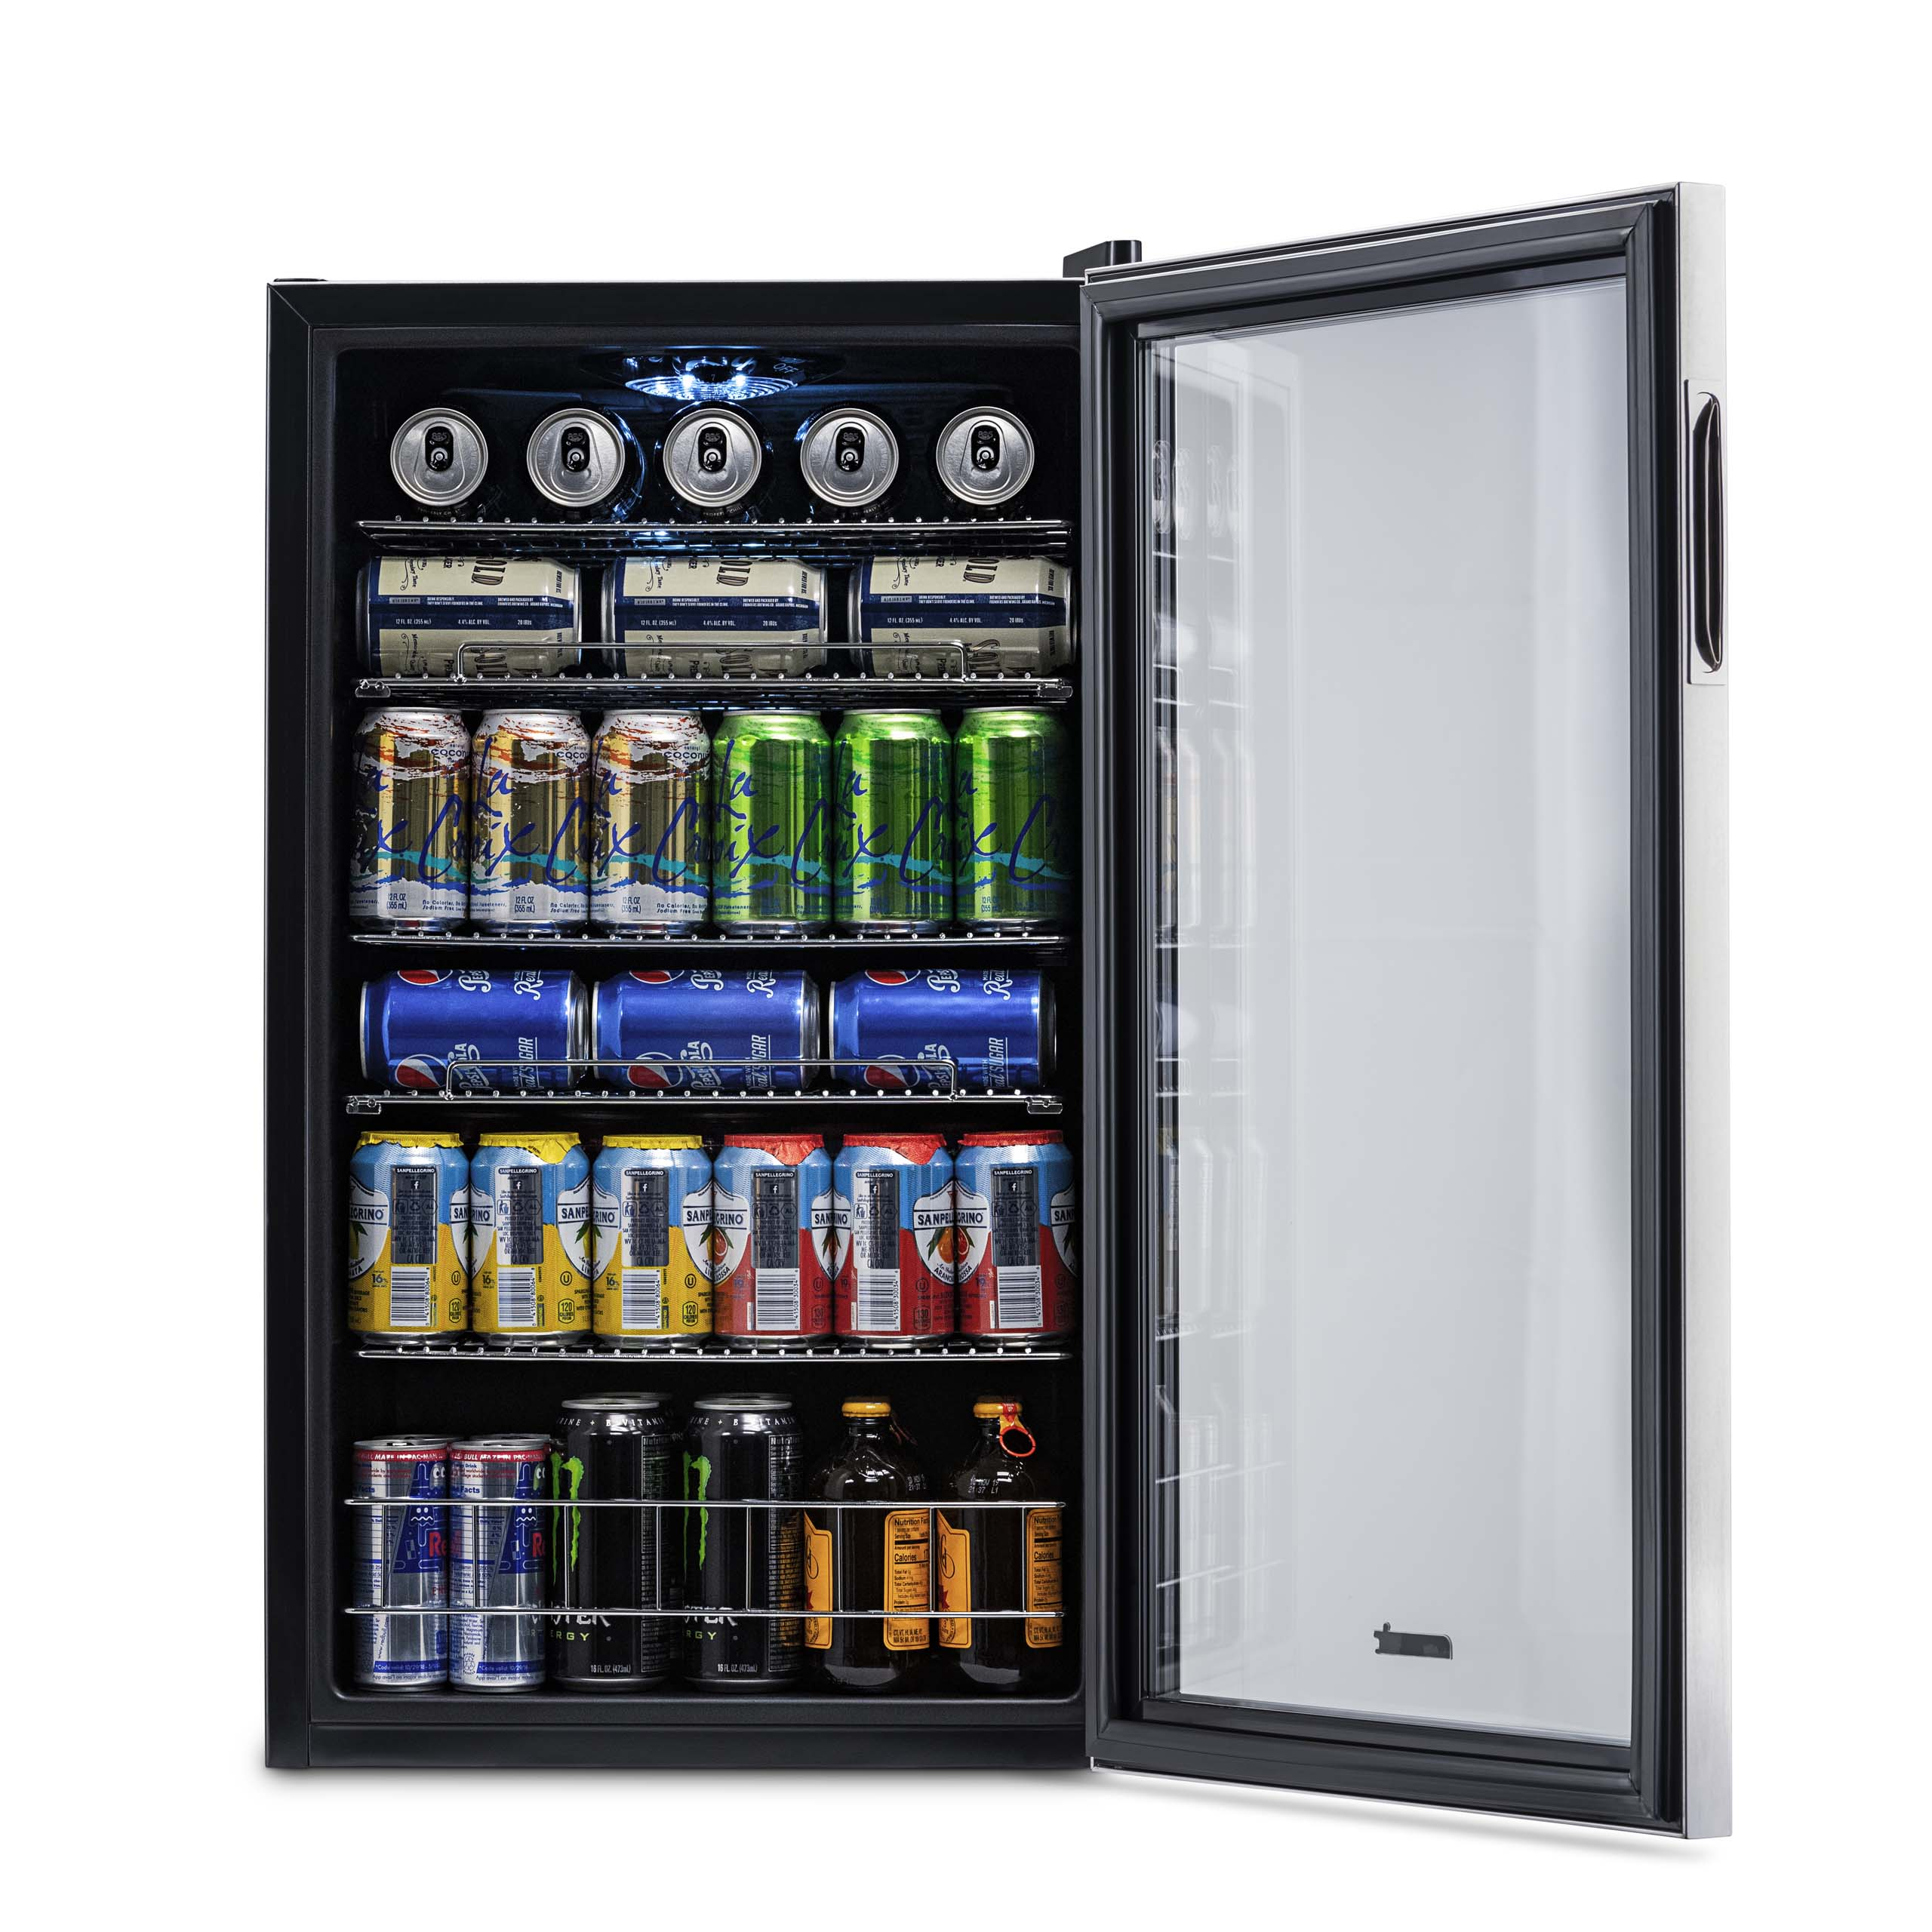 NewAir AB-1200 126-Can Beverage Cooler   Stainless Steel